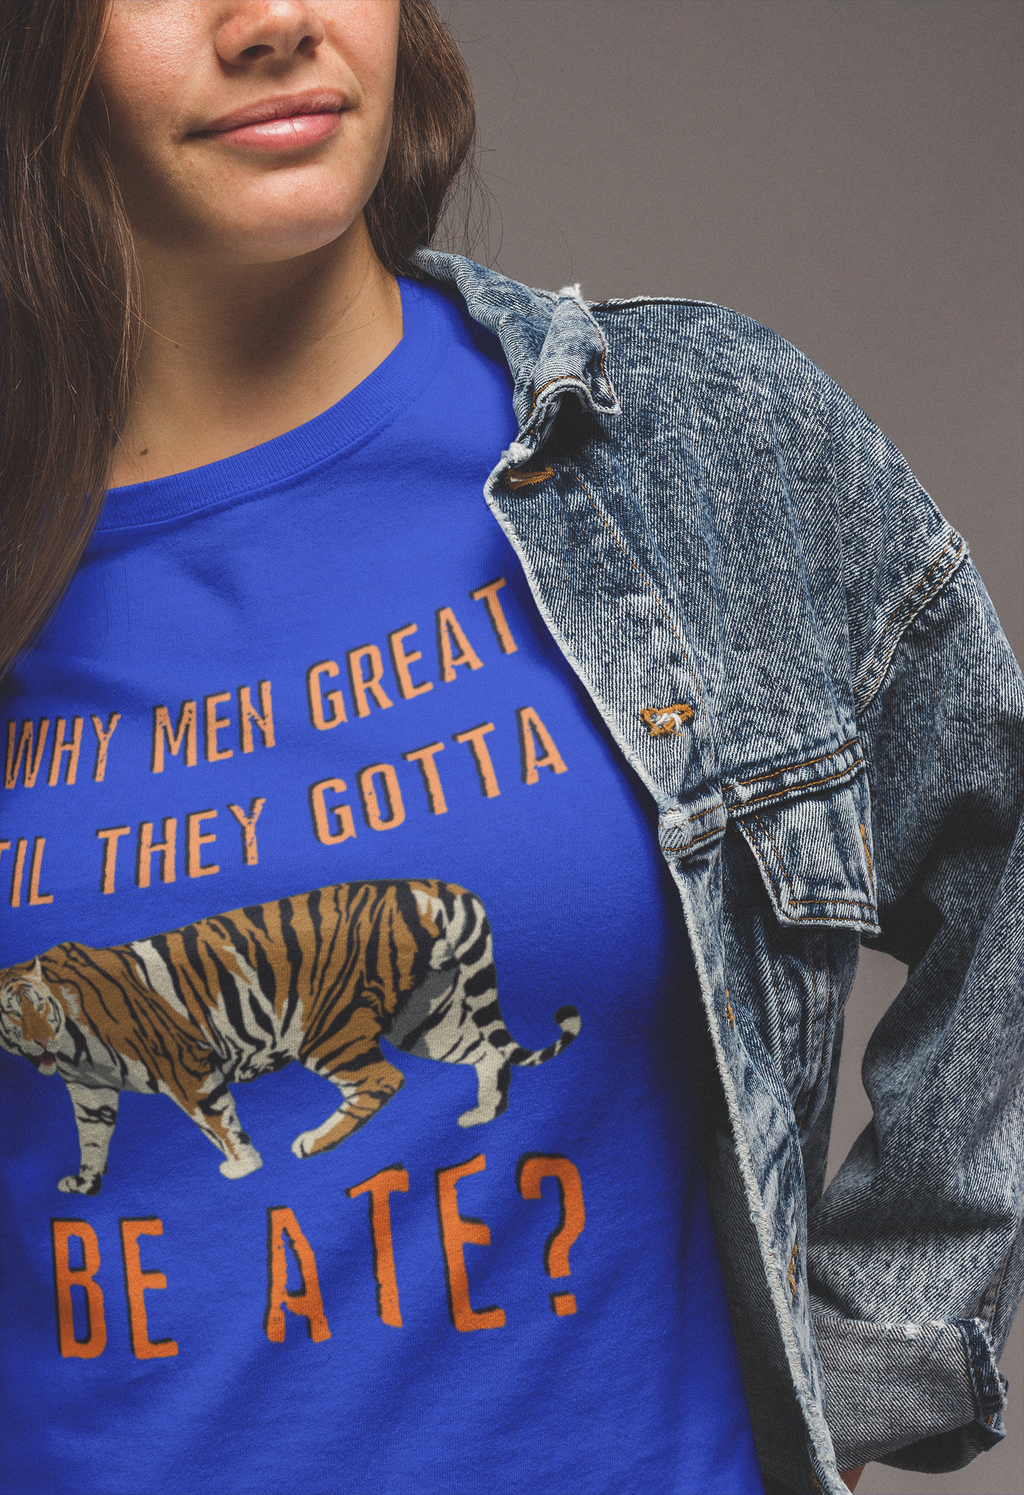 Why Men Great T-Shirt - Adults-blue, exotic, king, tiger, tiger king-Shop-Wholesale-Womens-Boutique-Custom-Graphic-Tees-Branding-Gifts